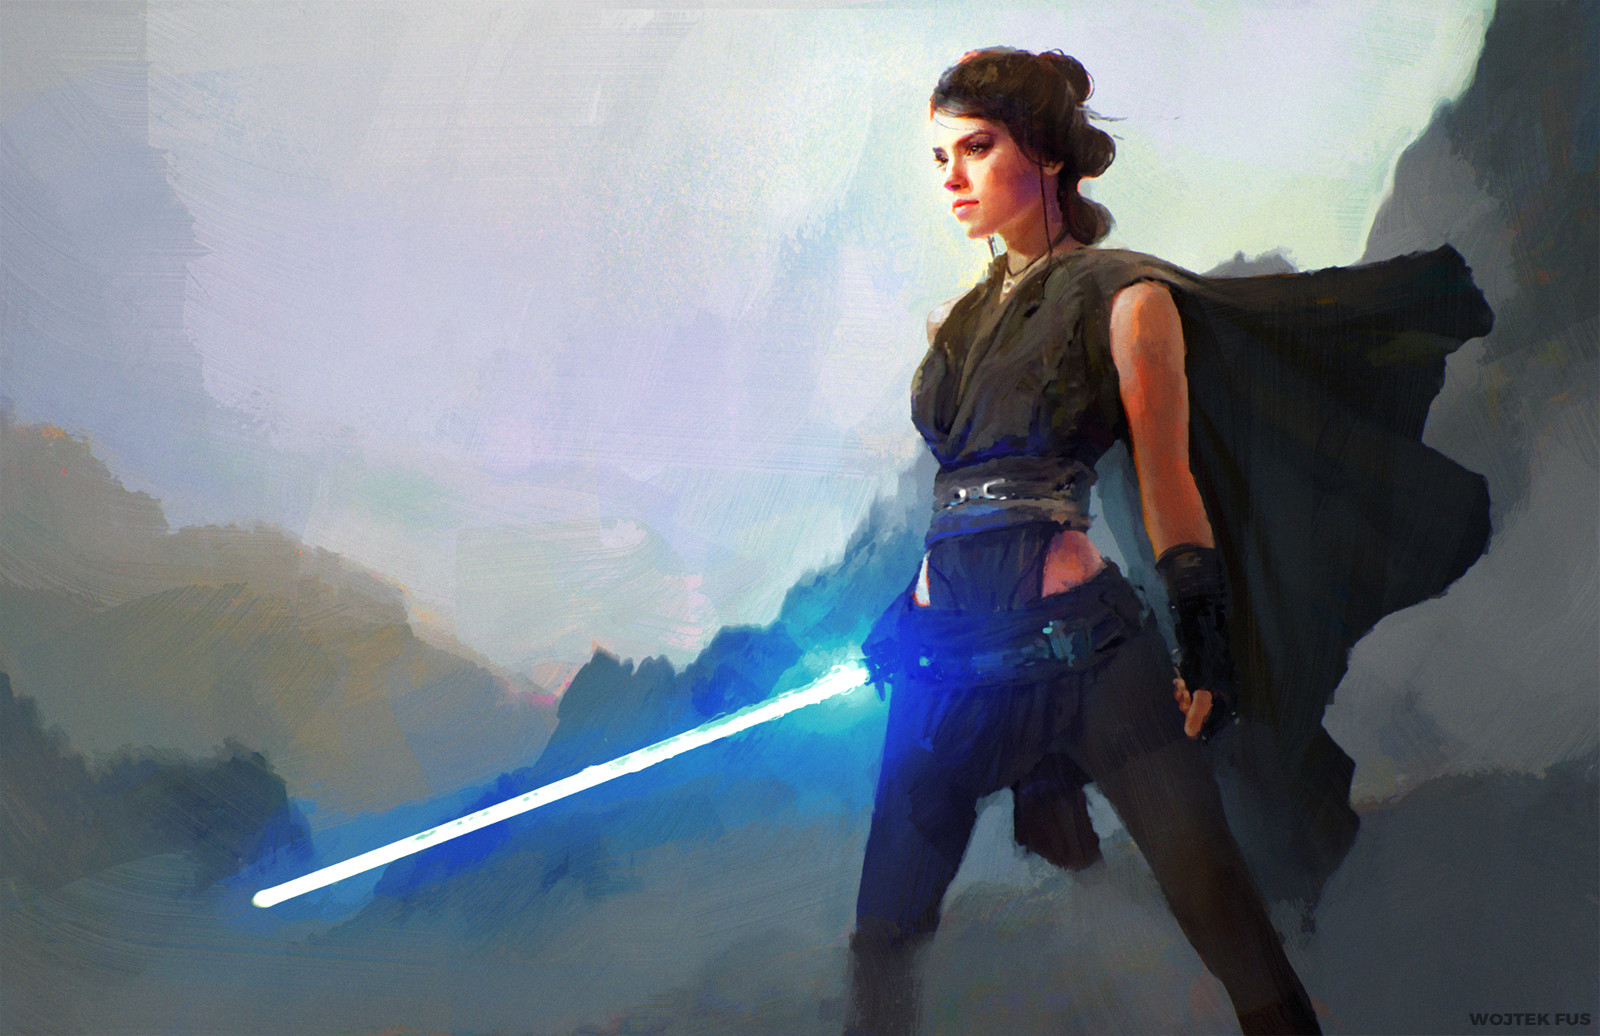 Some great Rey artwork - her defiant expression!